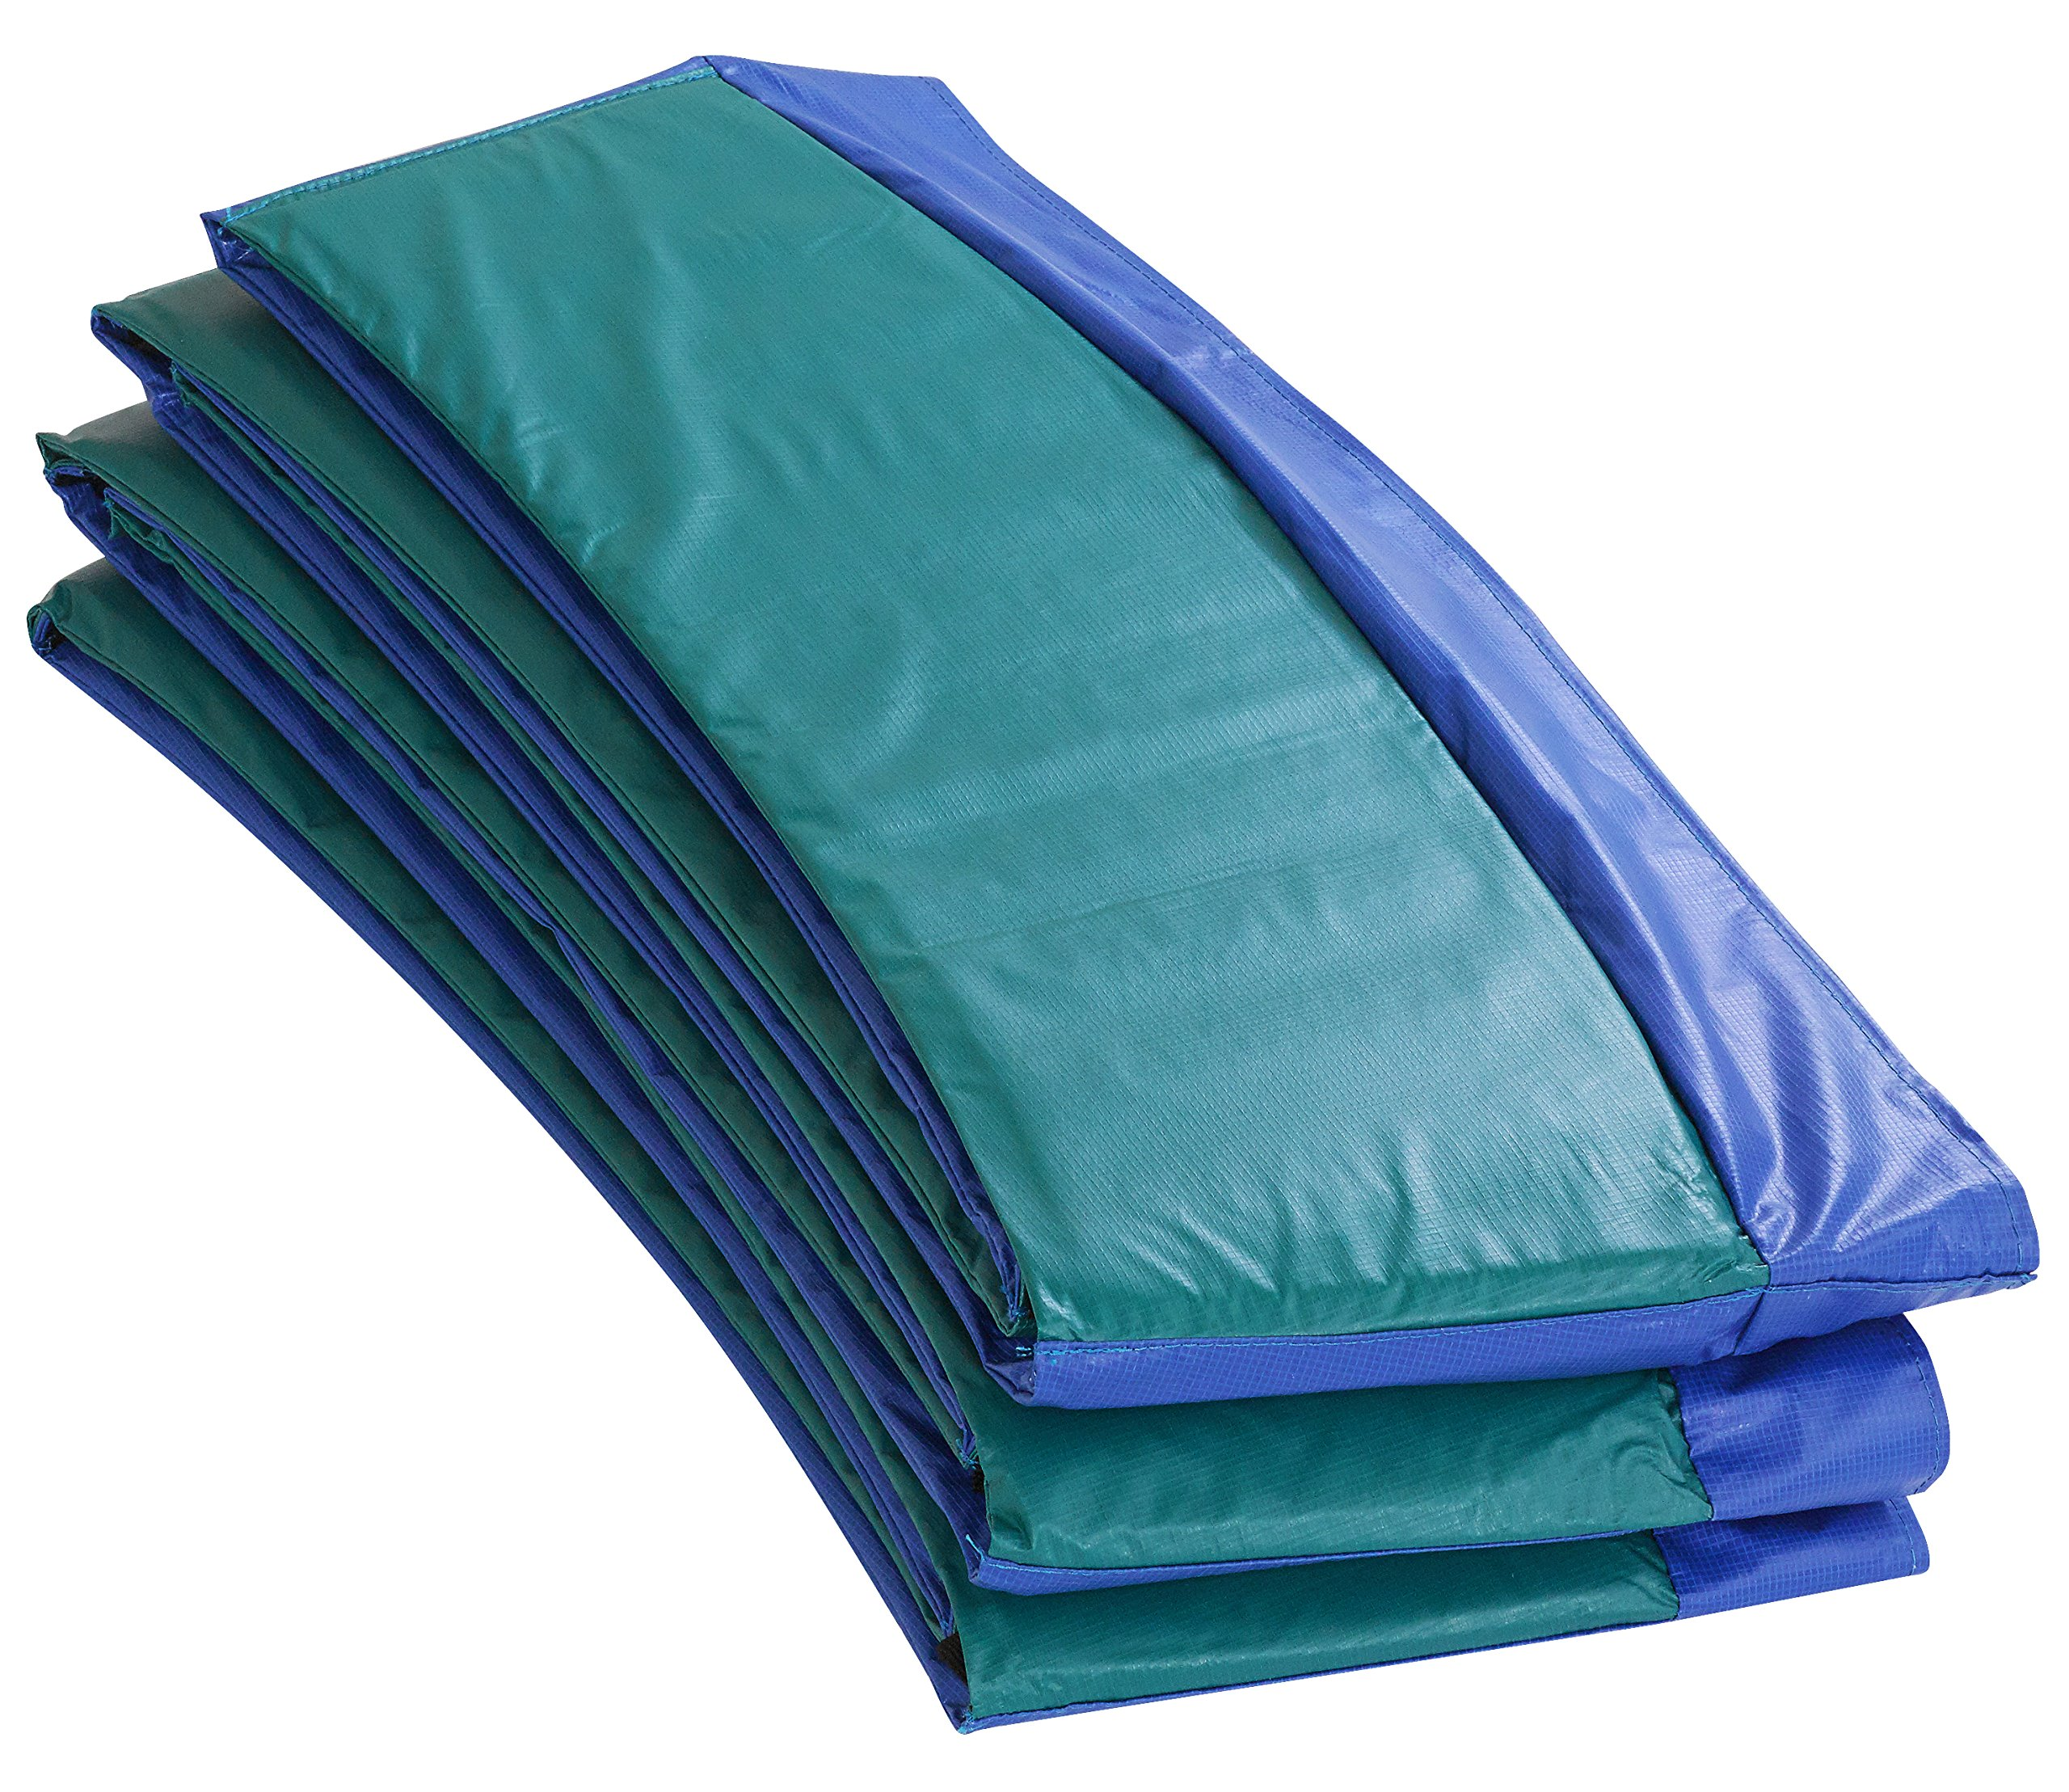 Upper Bounce Super Trampoline Safety Pad, 12-Feet, Blue/Green by Upper Bounce